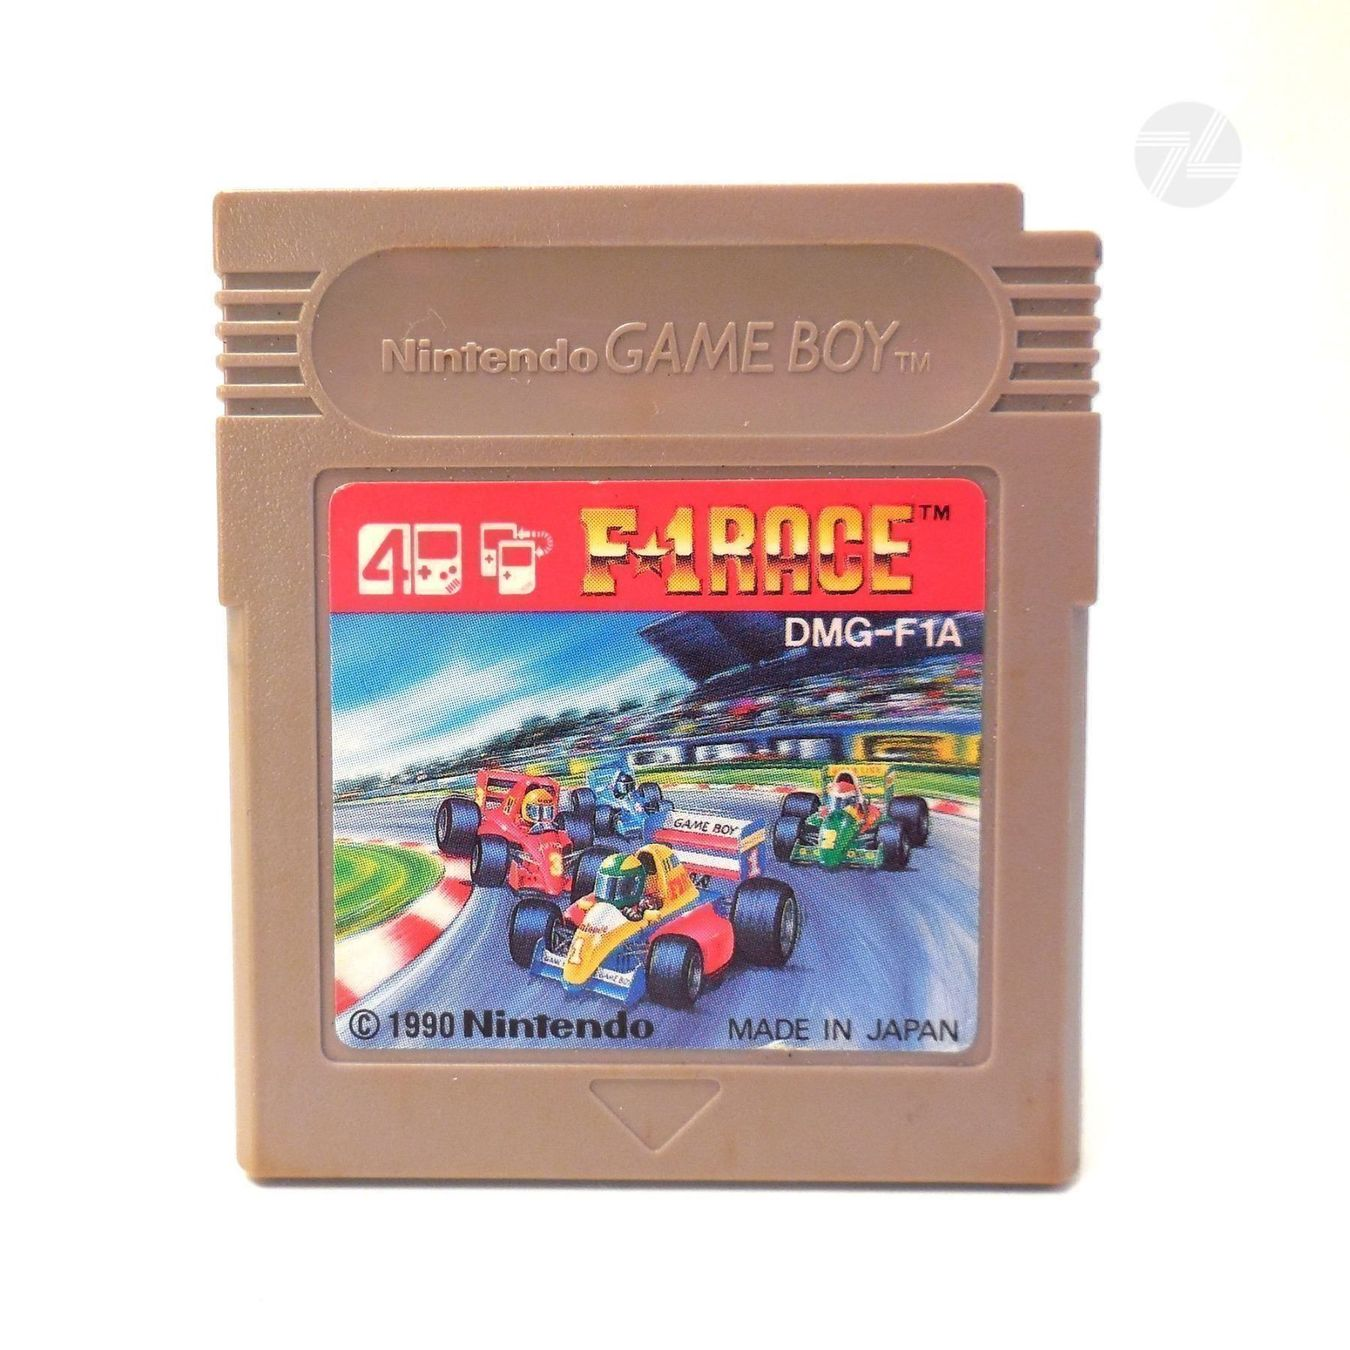 F*1 RACE (4 Player) Gameboy F1 Game